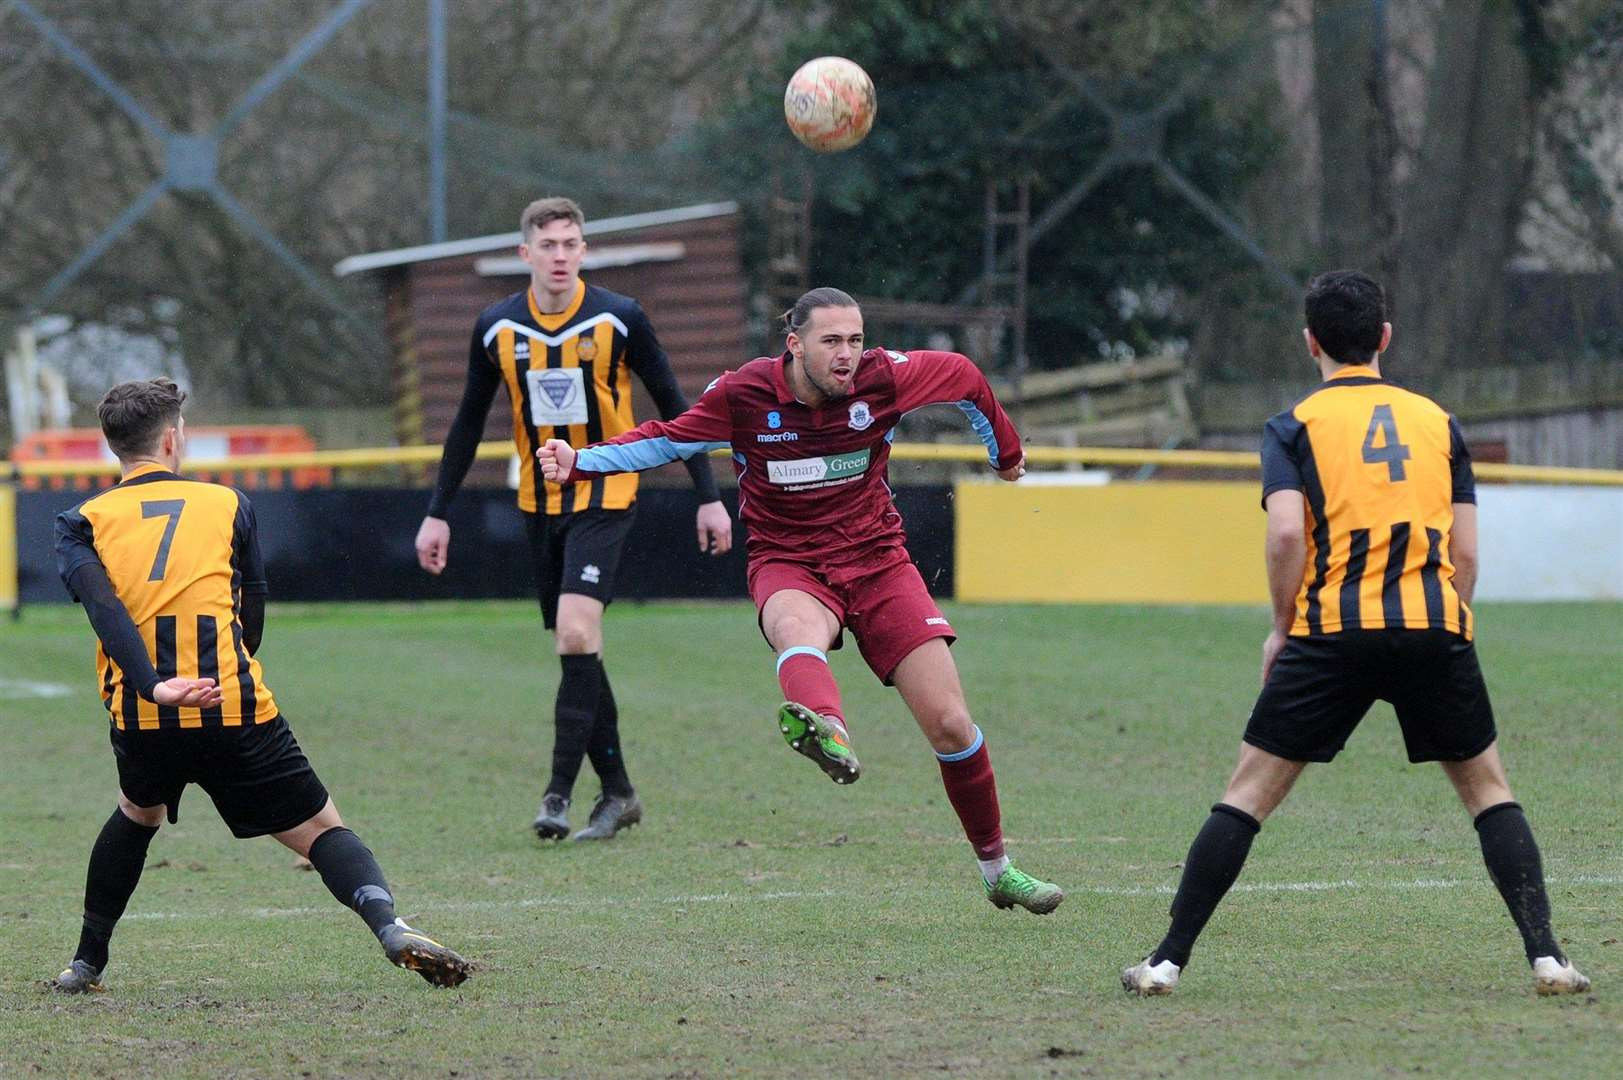 NEW CLUB: Max Melanson, pictured in action for Thetford at Greens Meadow last season, has joined Stow